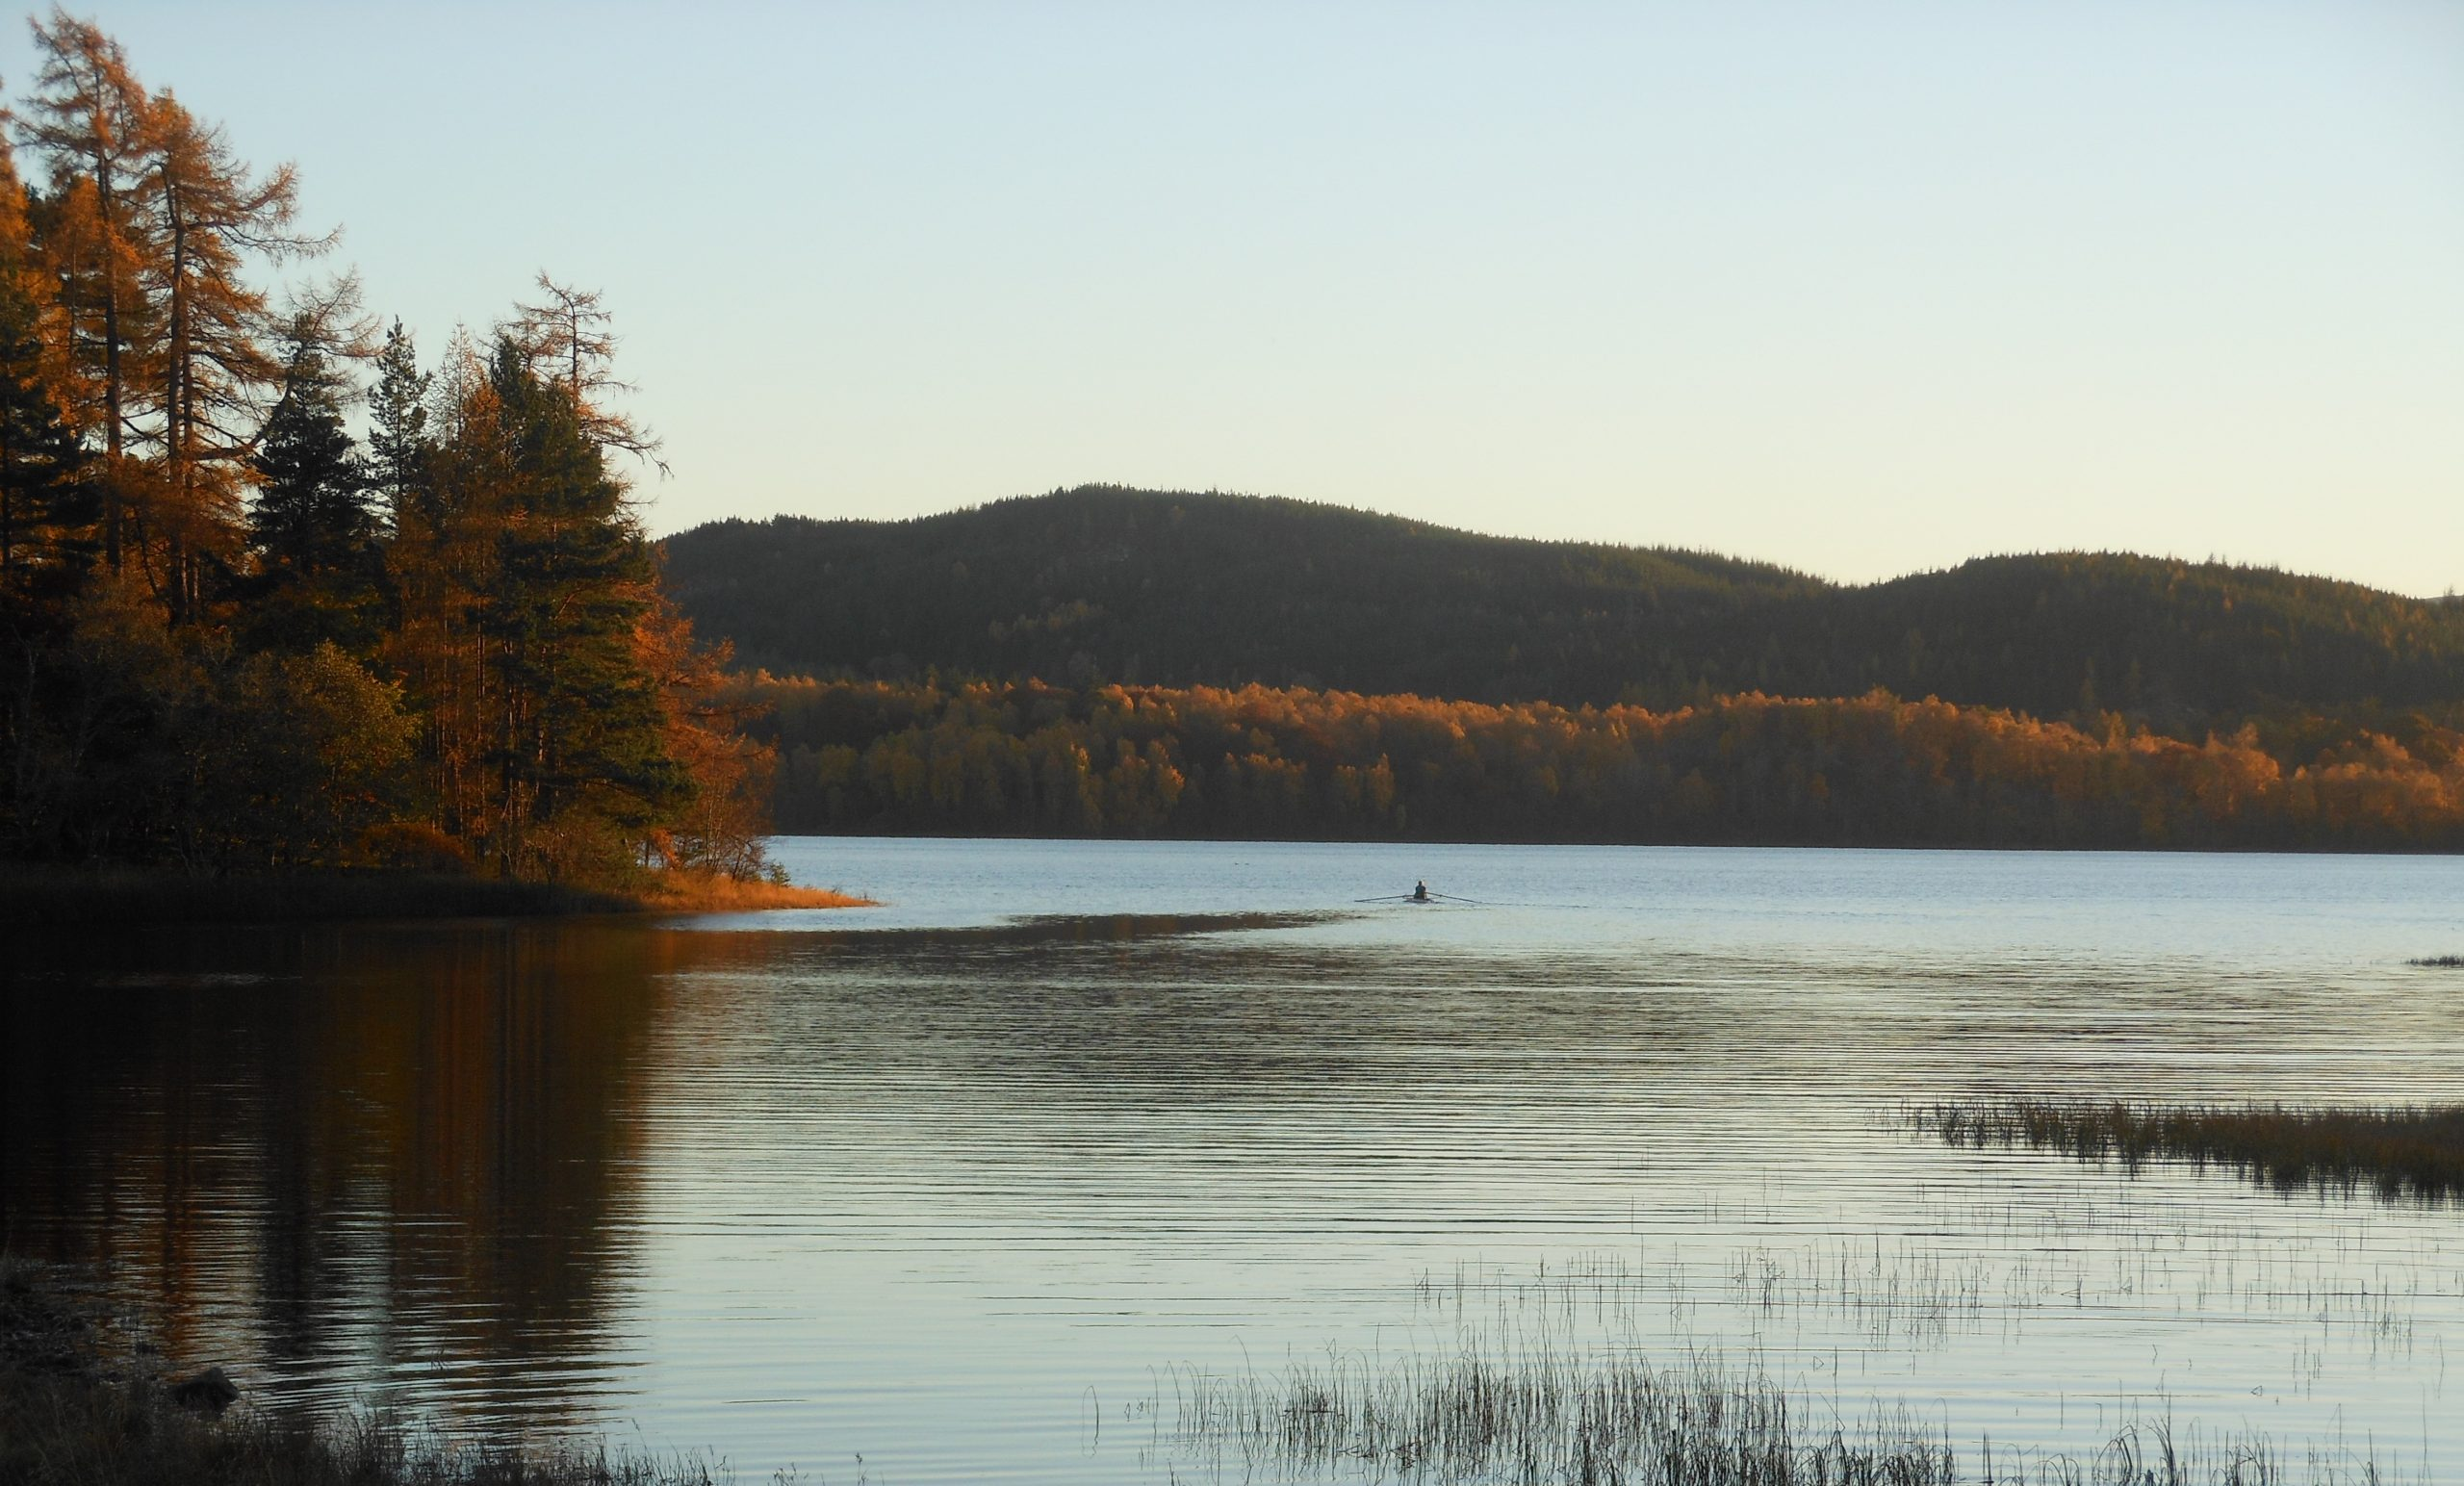 Loch Insh in Autumn with canoe